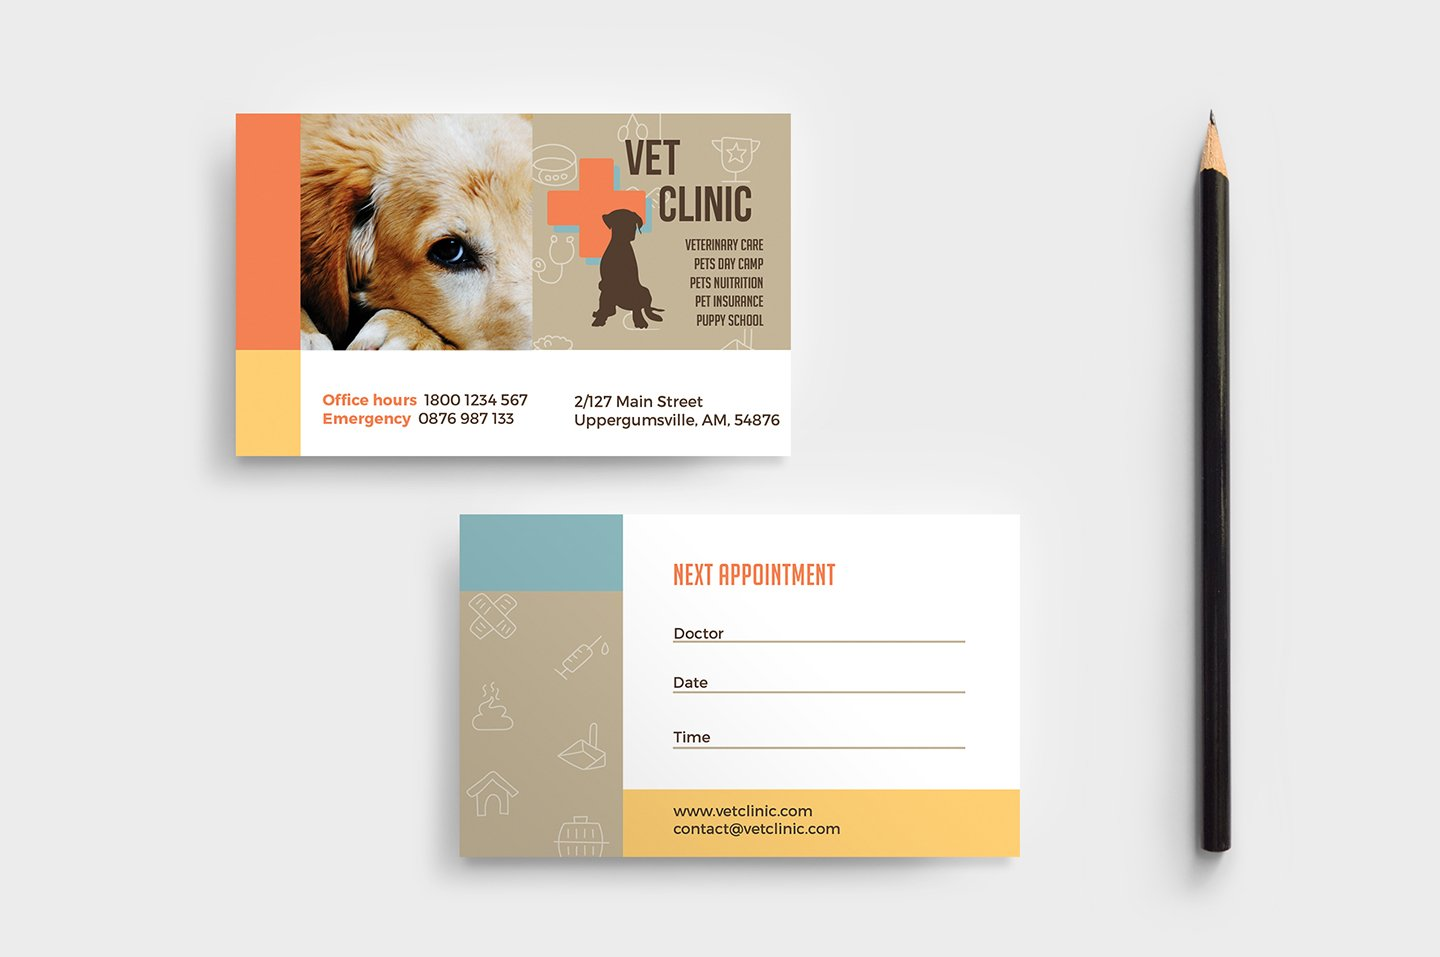 Vet Clinic Business Card Template ~ Business Card Templates ...